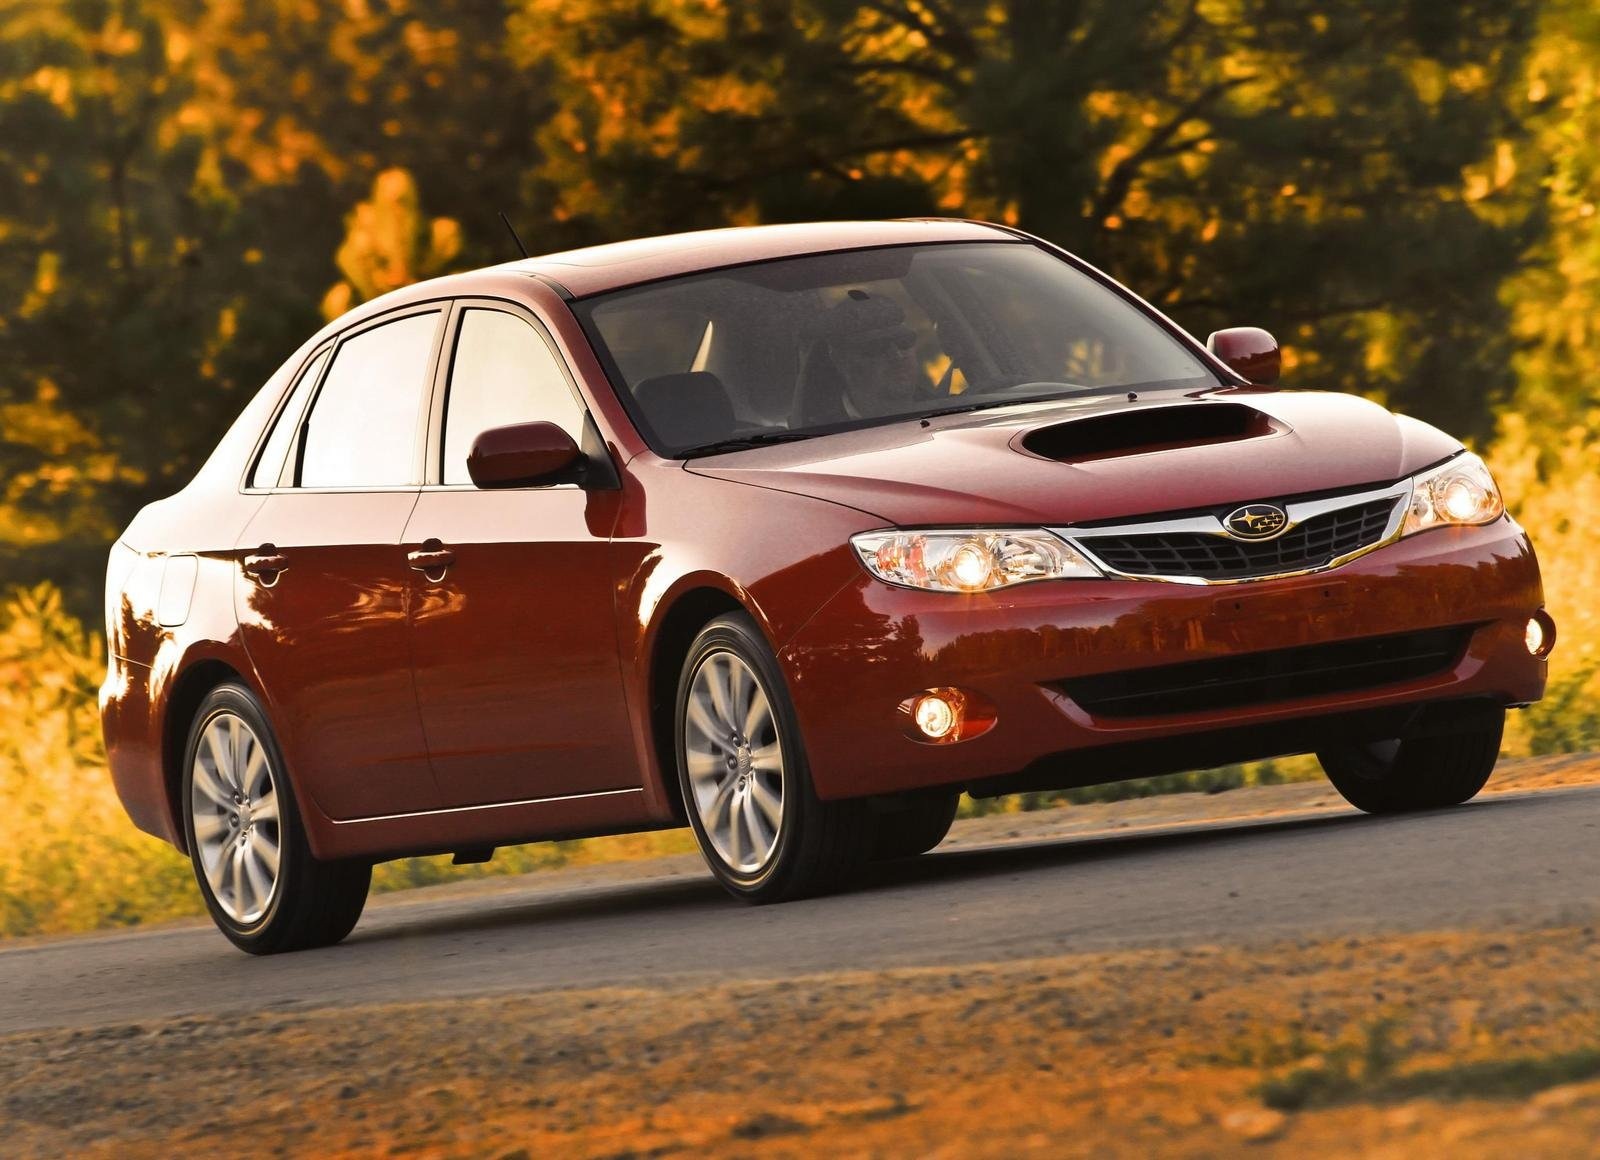 2009 subaru impreza 2 5gt review gallery top speed. Black Bedroom Furniture Sets. Home Design Ideas